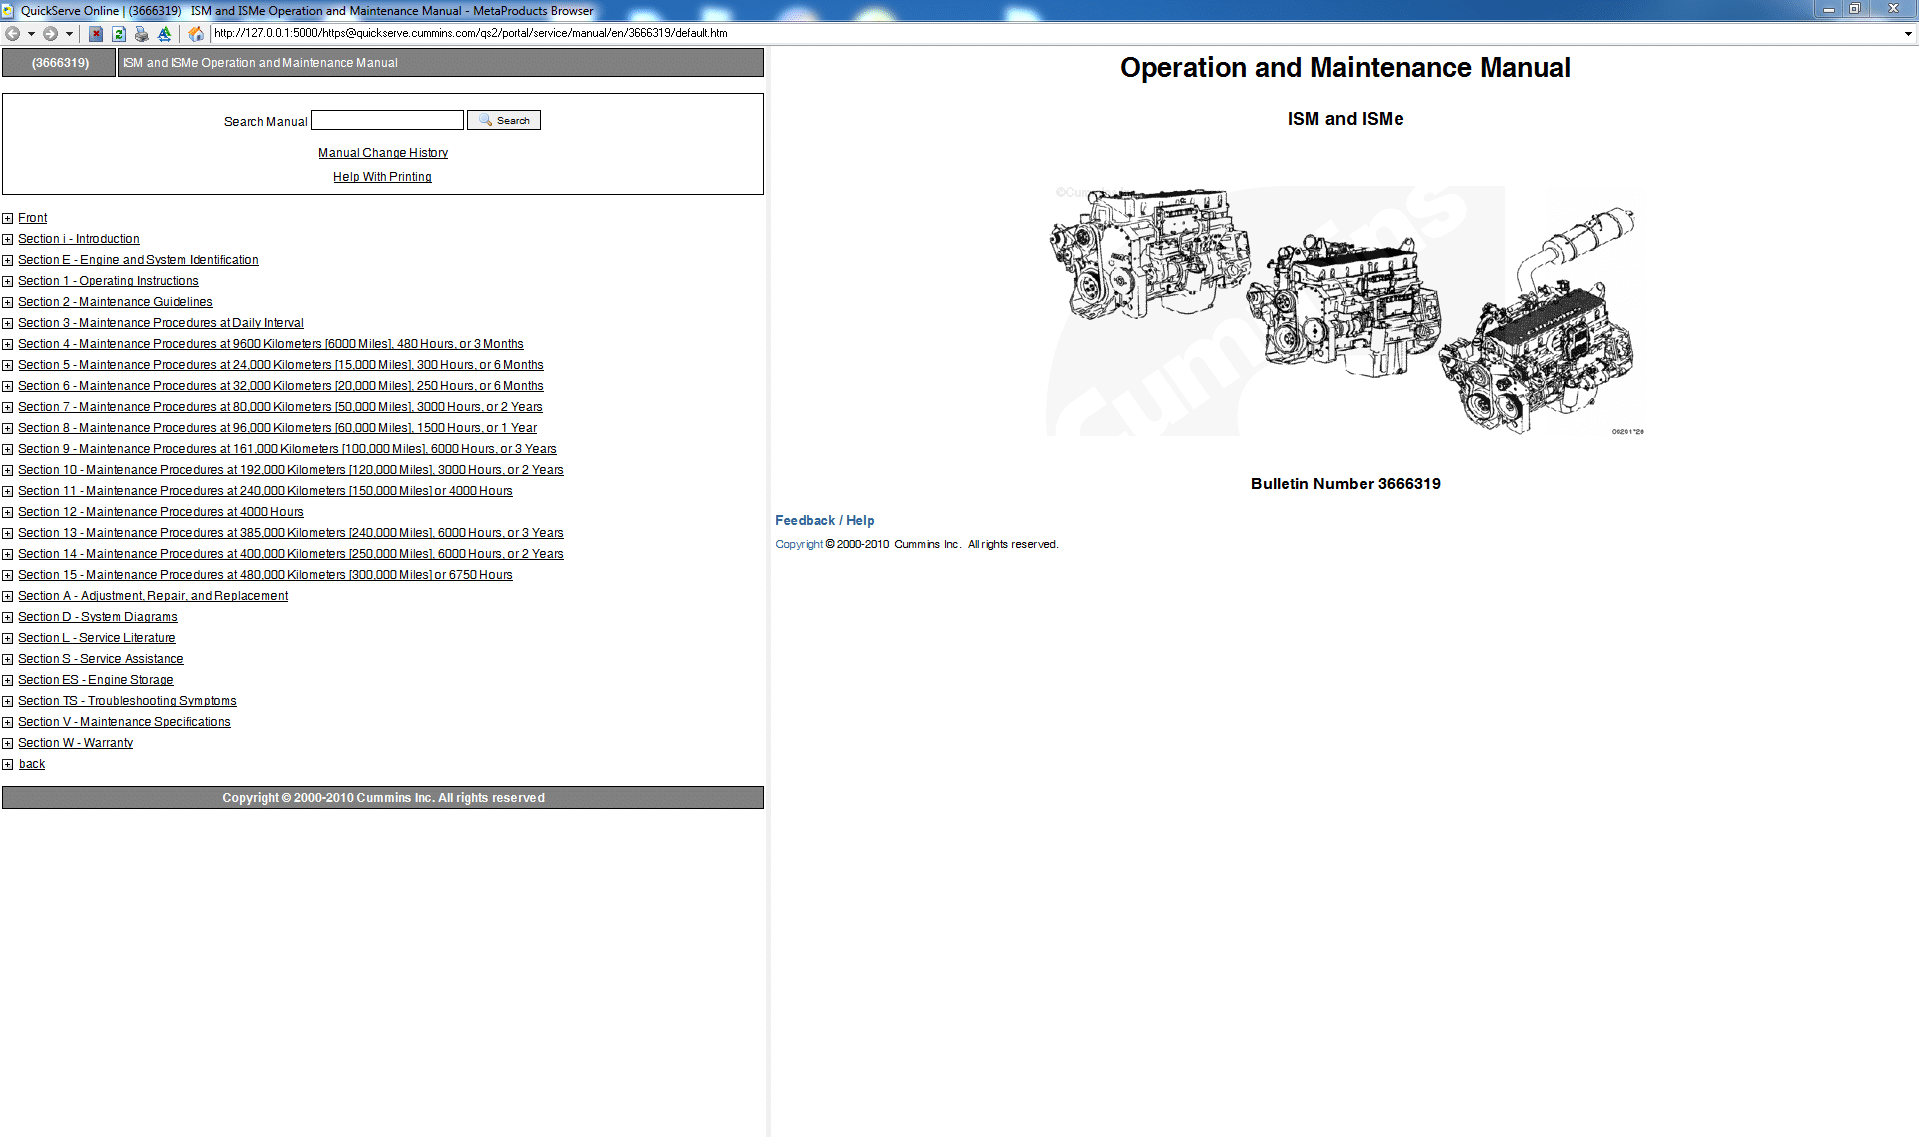 Cummins Operation and Maintence Manual ISM and ISMe Engine